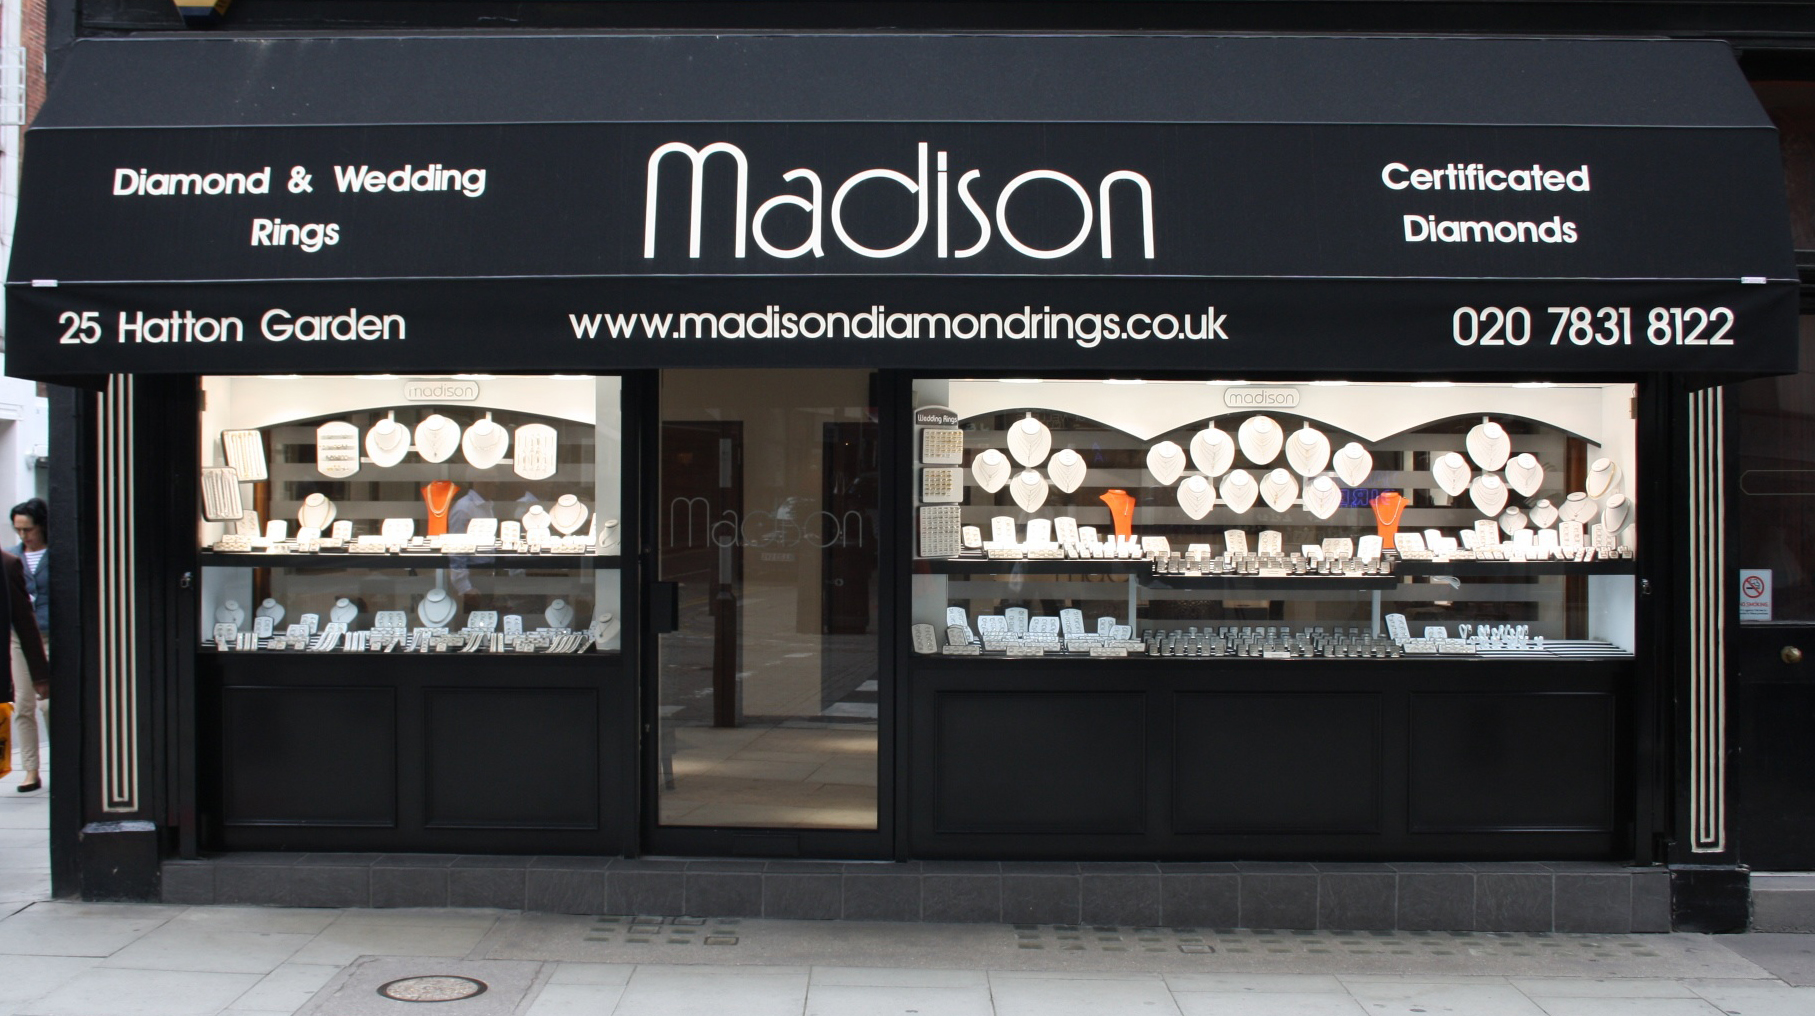 All black exterior, abundant display, and a big white logo. This is the idea that Madison Jewellers chose to go with for their shop in Hatton Garden.